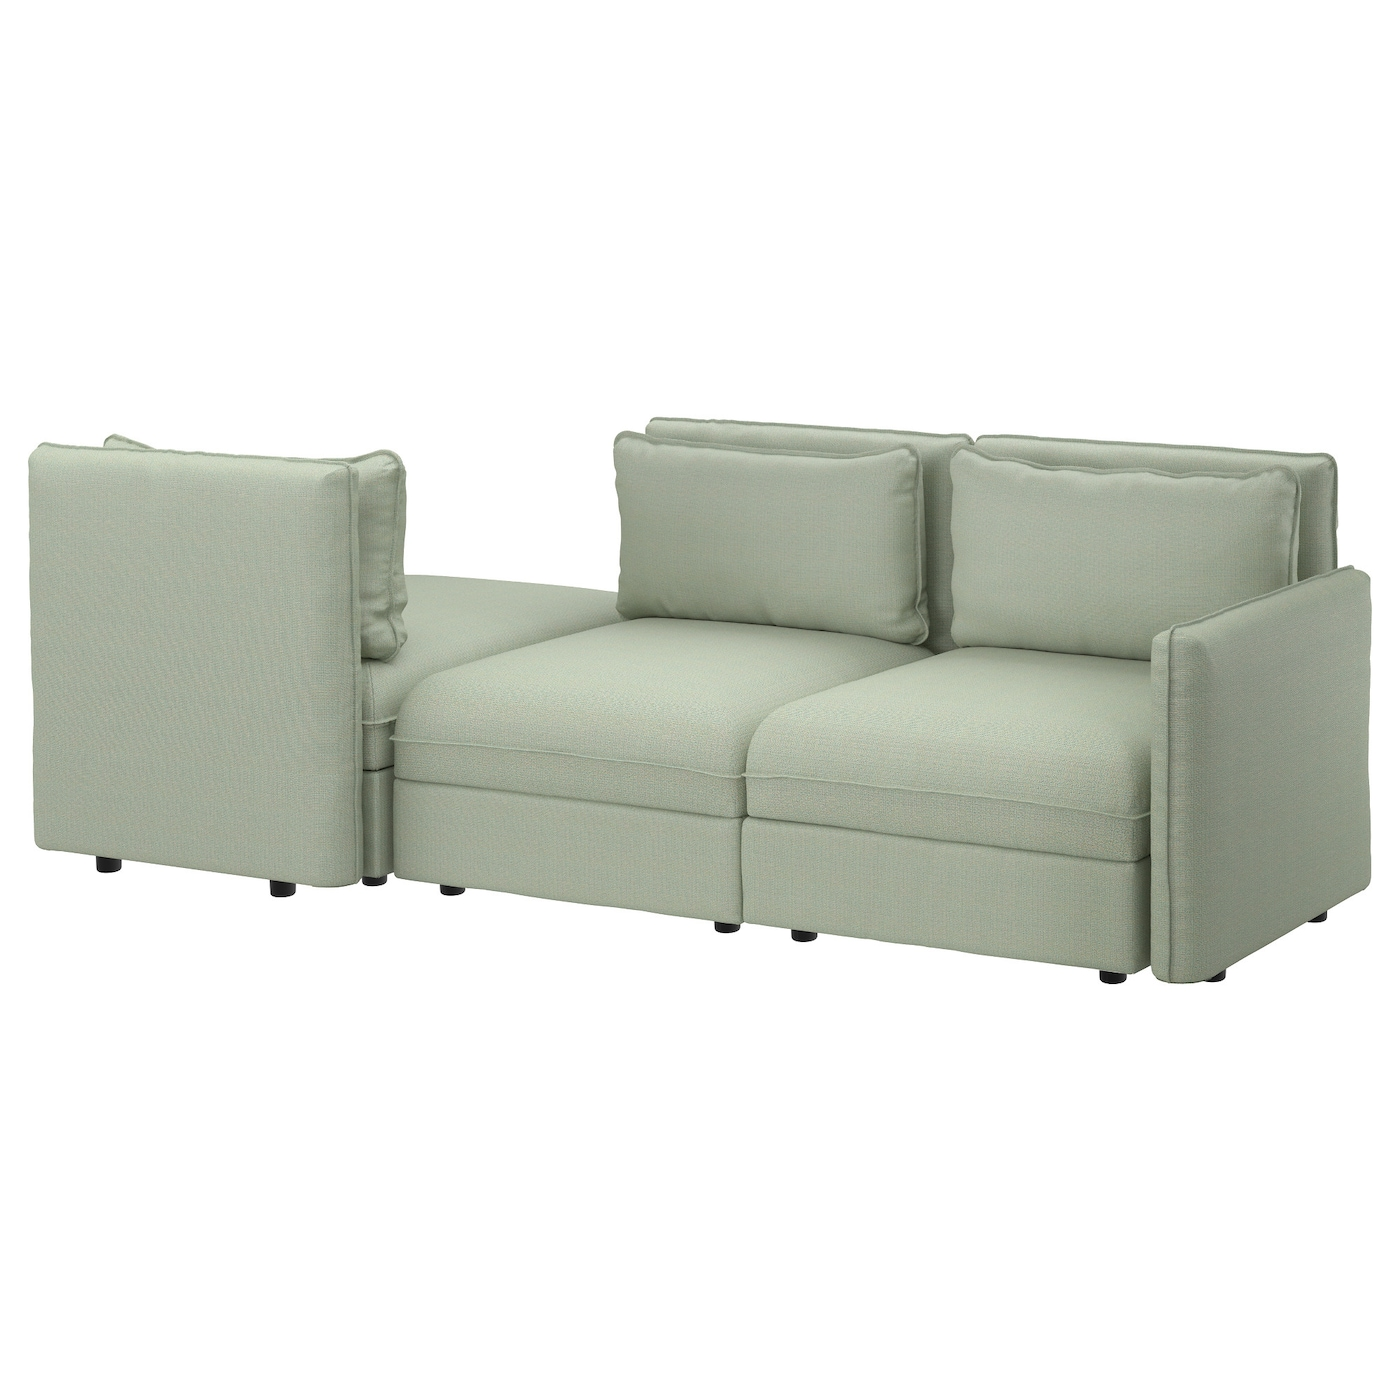 VALLENTUNA 3 seat sofa with bed Hillared green IKEA